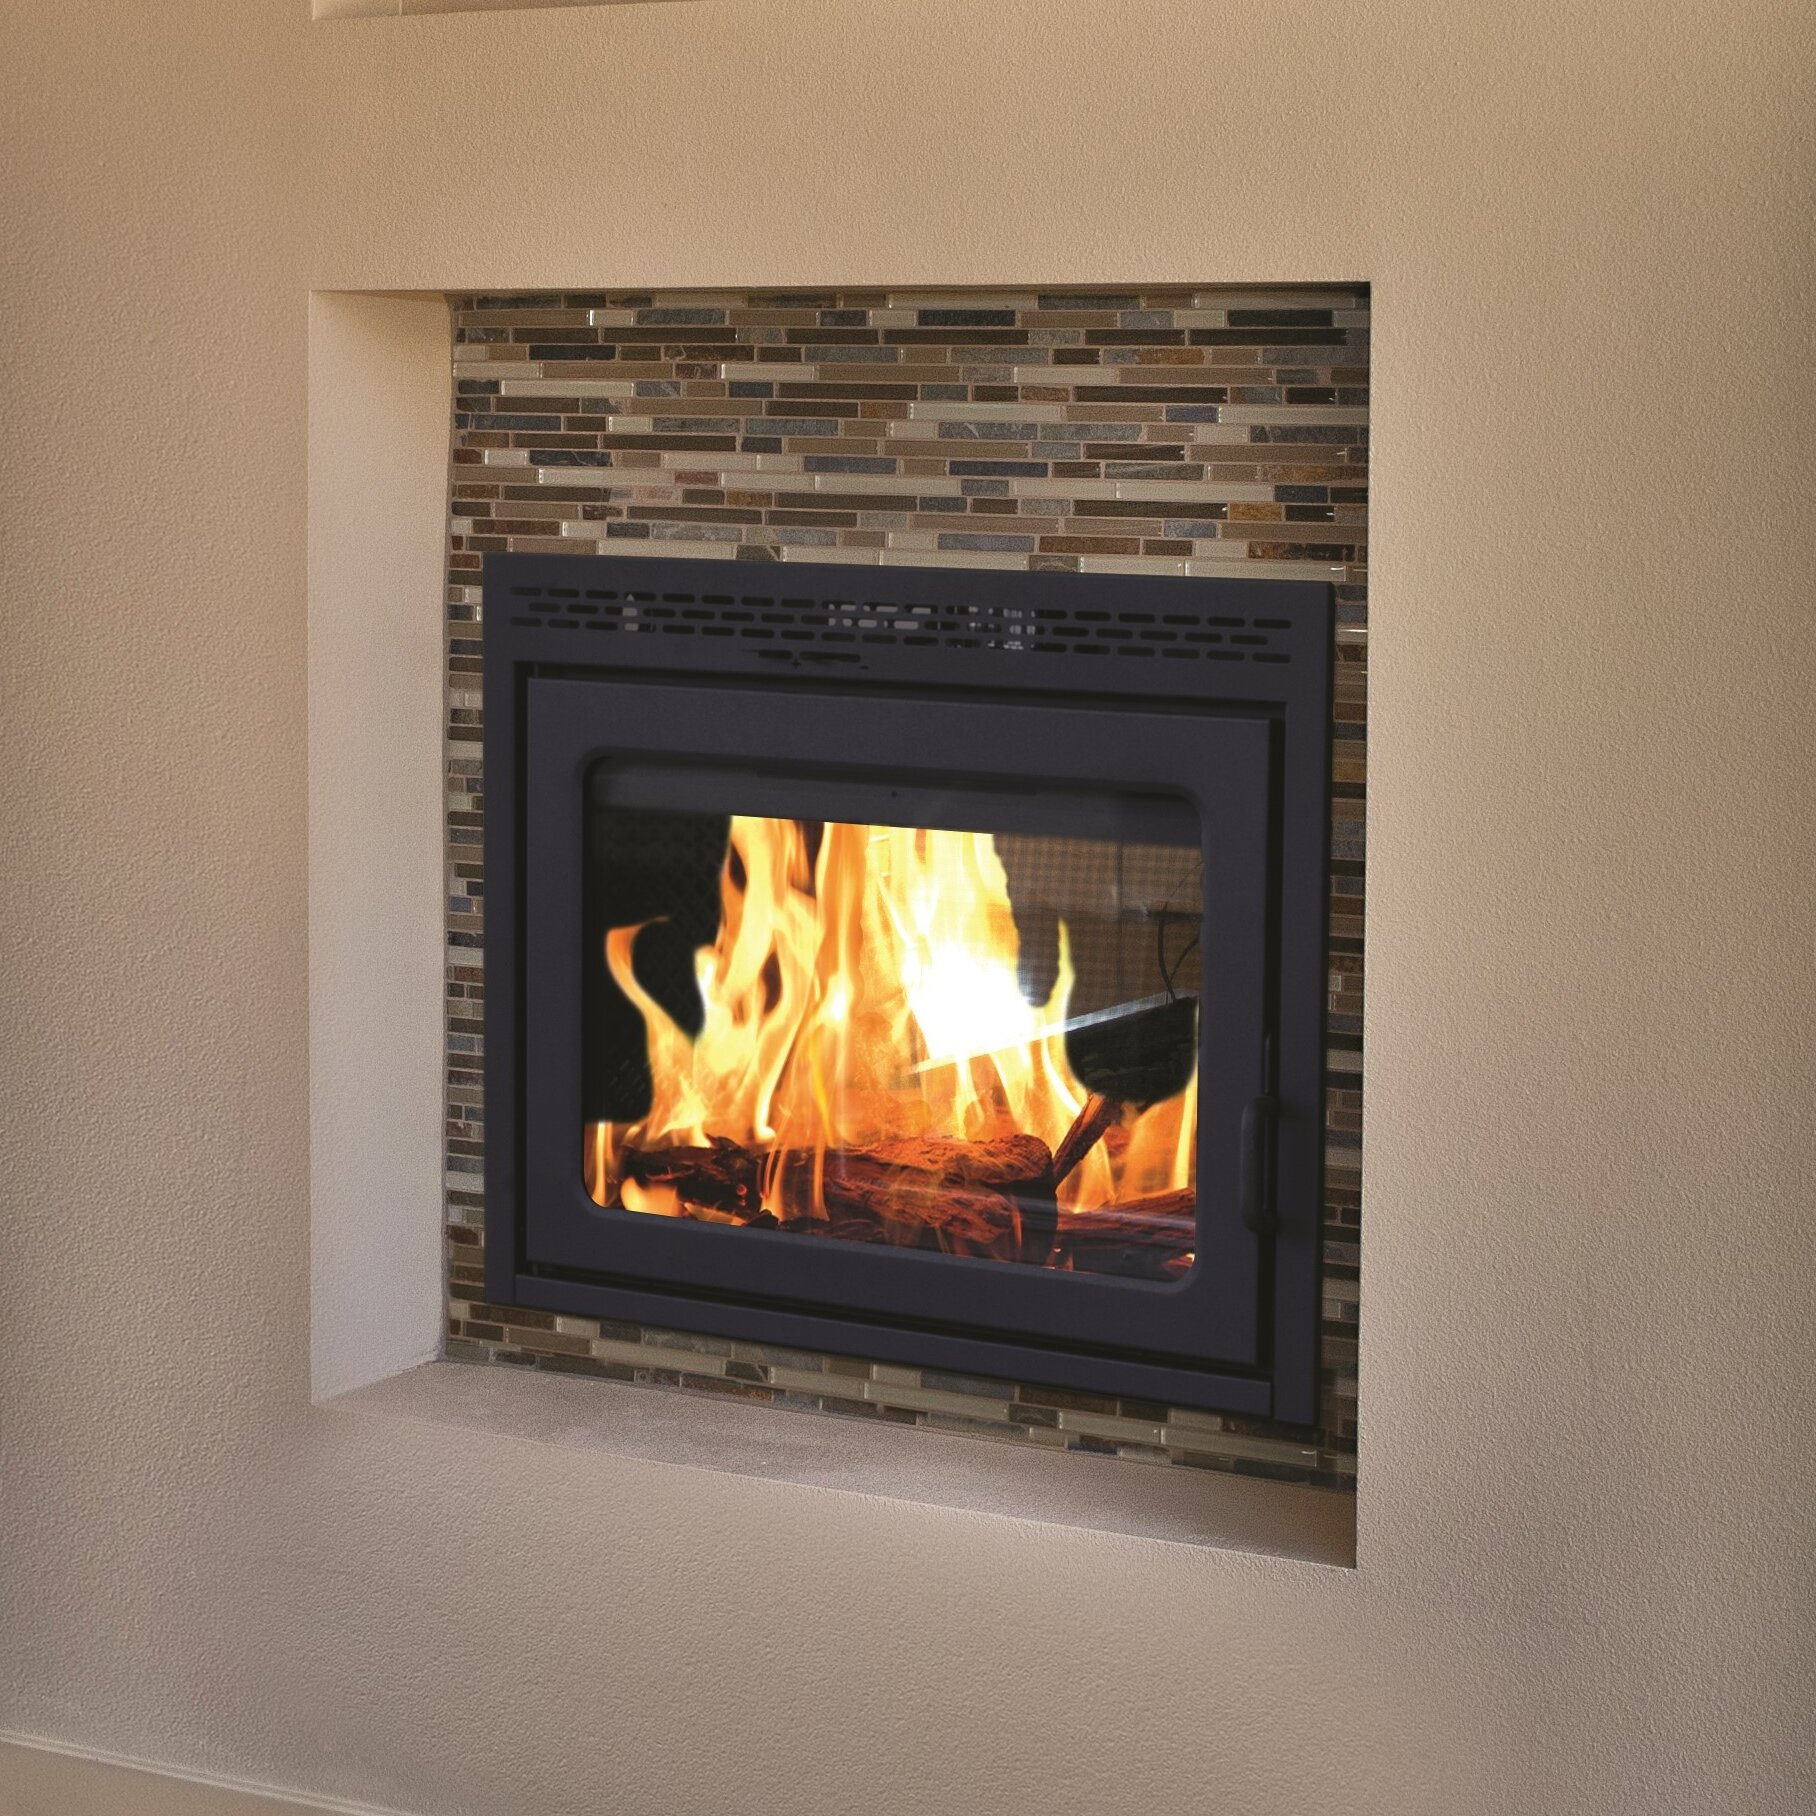 Supreme fireplaces inc duet see through fireplace wayfair for See through fireplaces